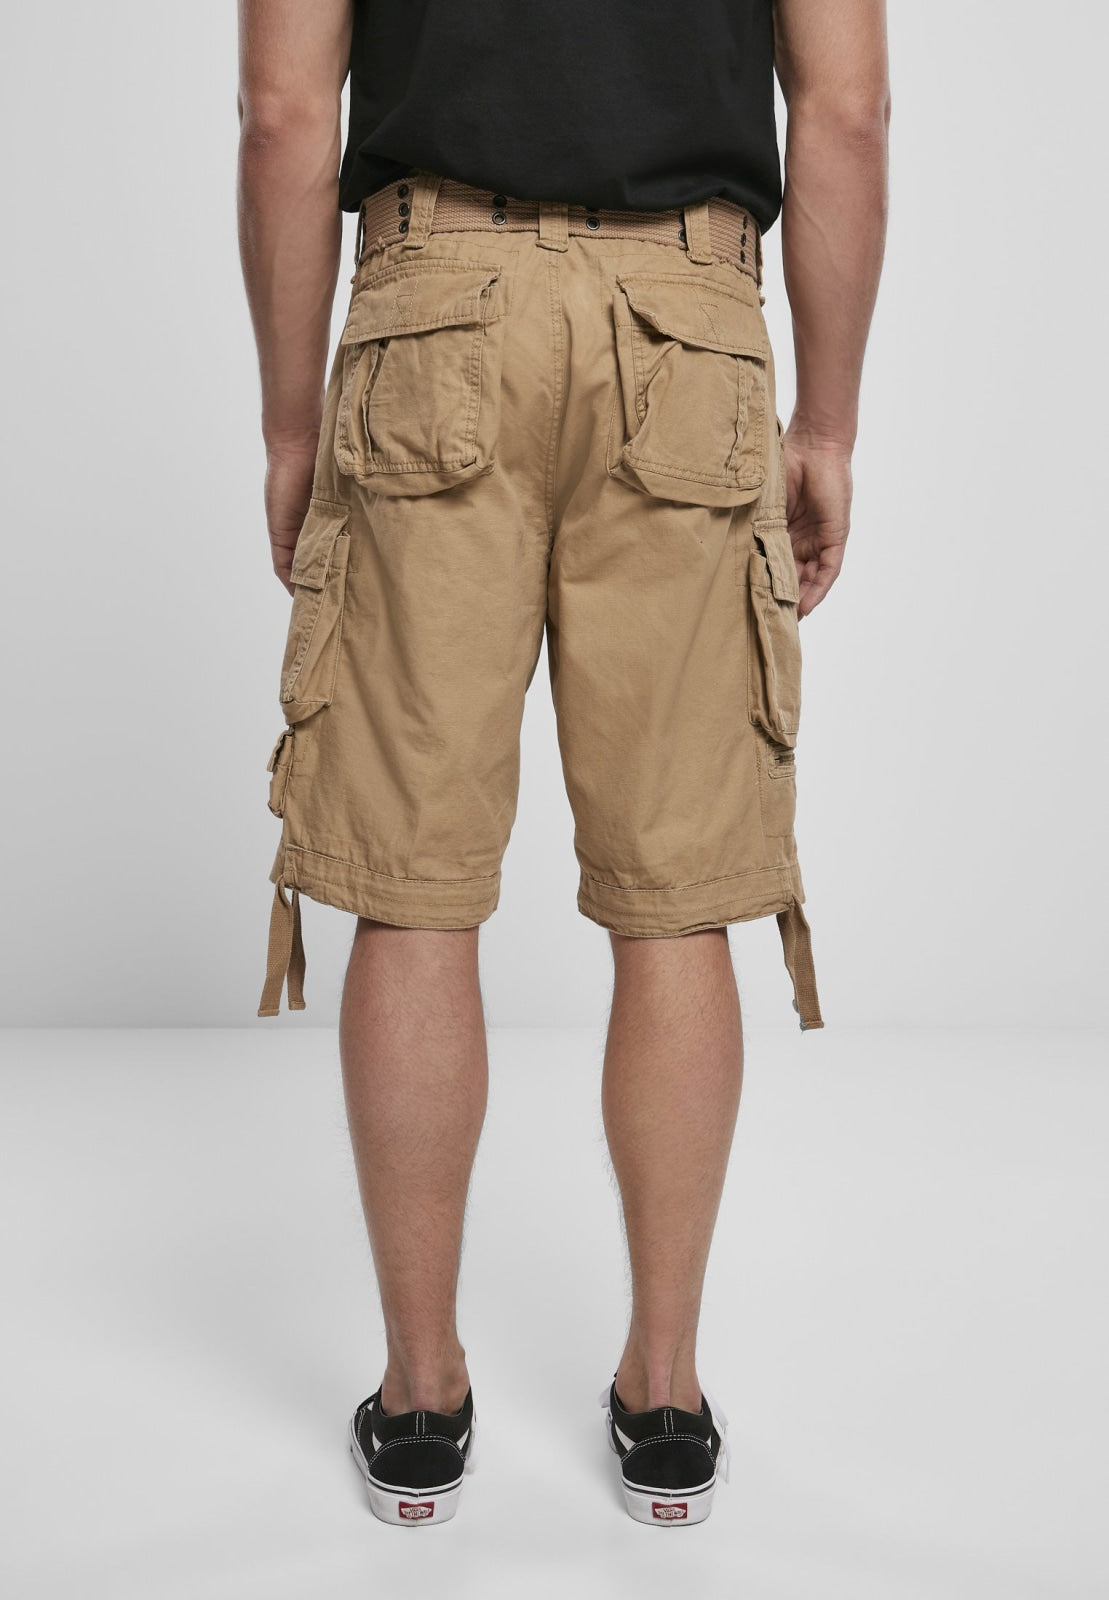 Savage Vintage Cargo Shorts (9 Colors | Sizes s - 7xl) Pants Brandit